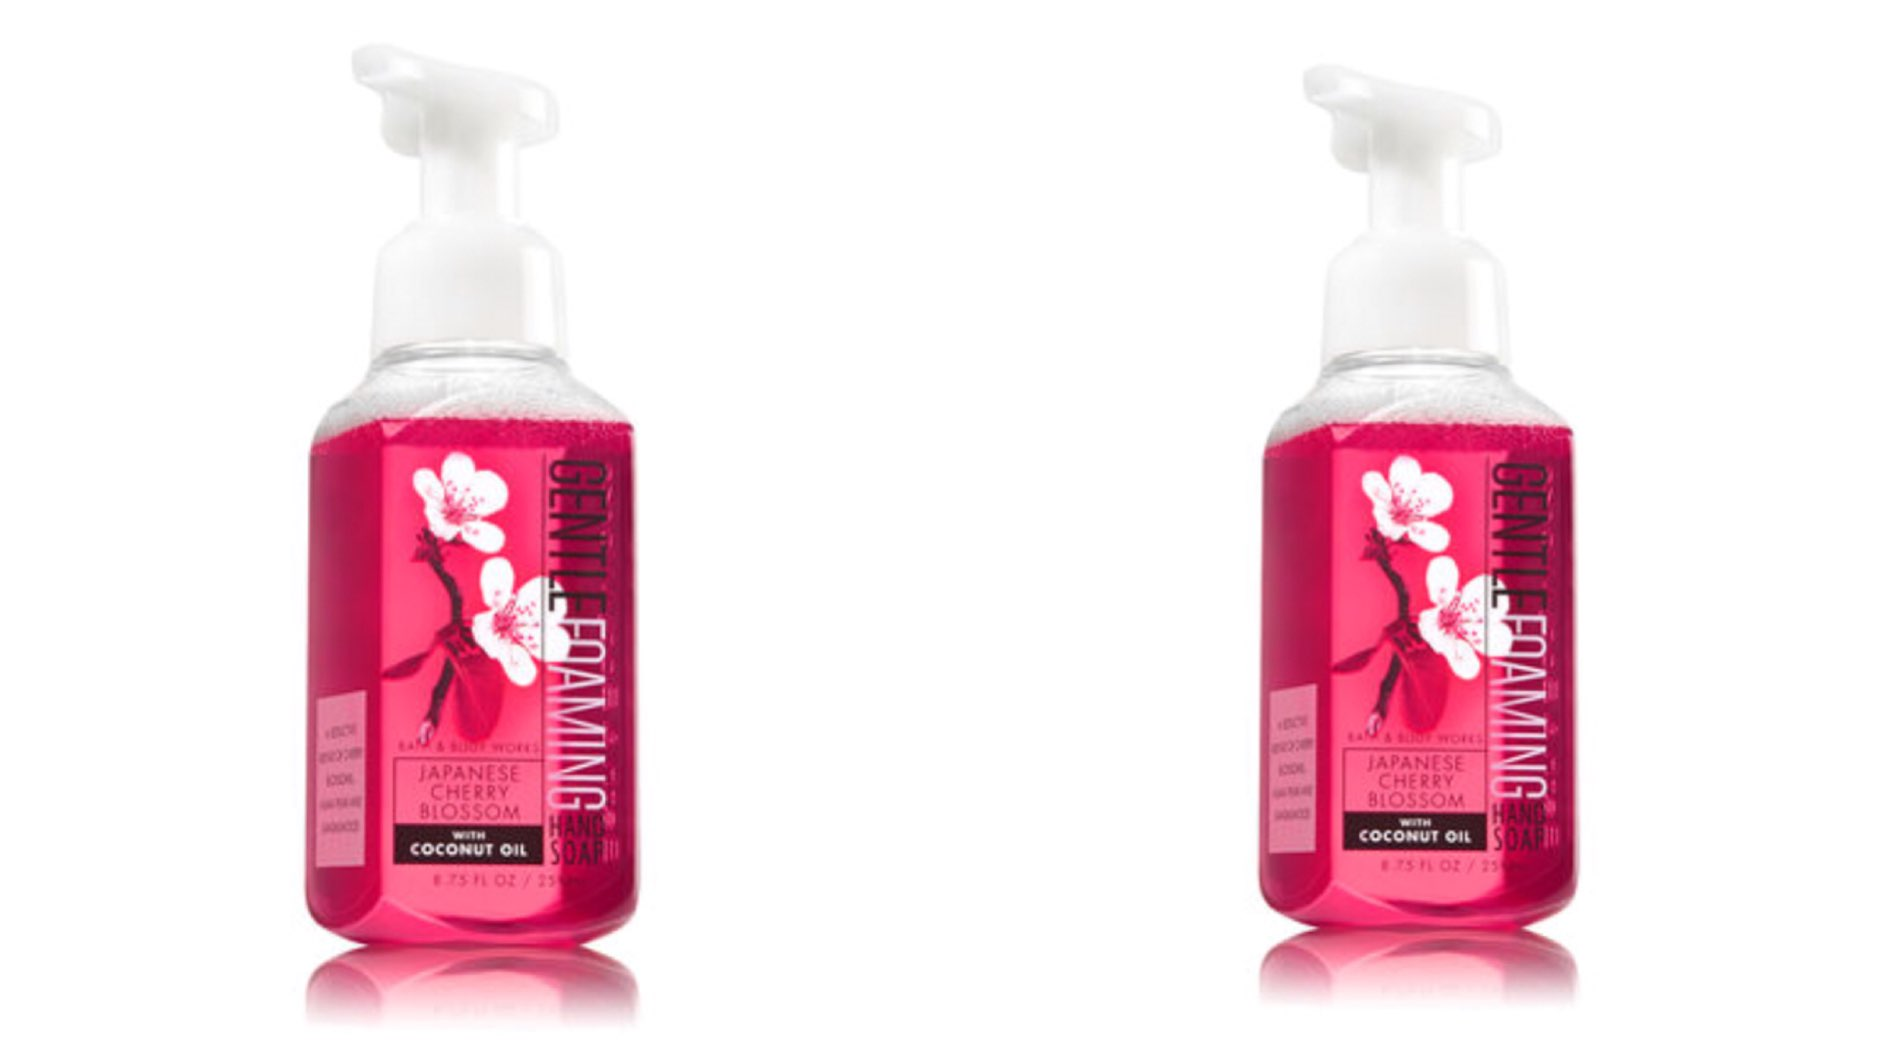 Bath and Body Works Japanese cherry blossom gentle foaming hand soap